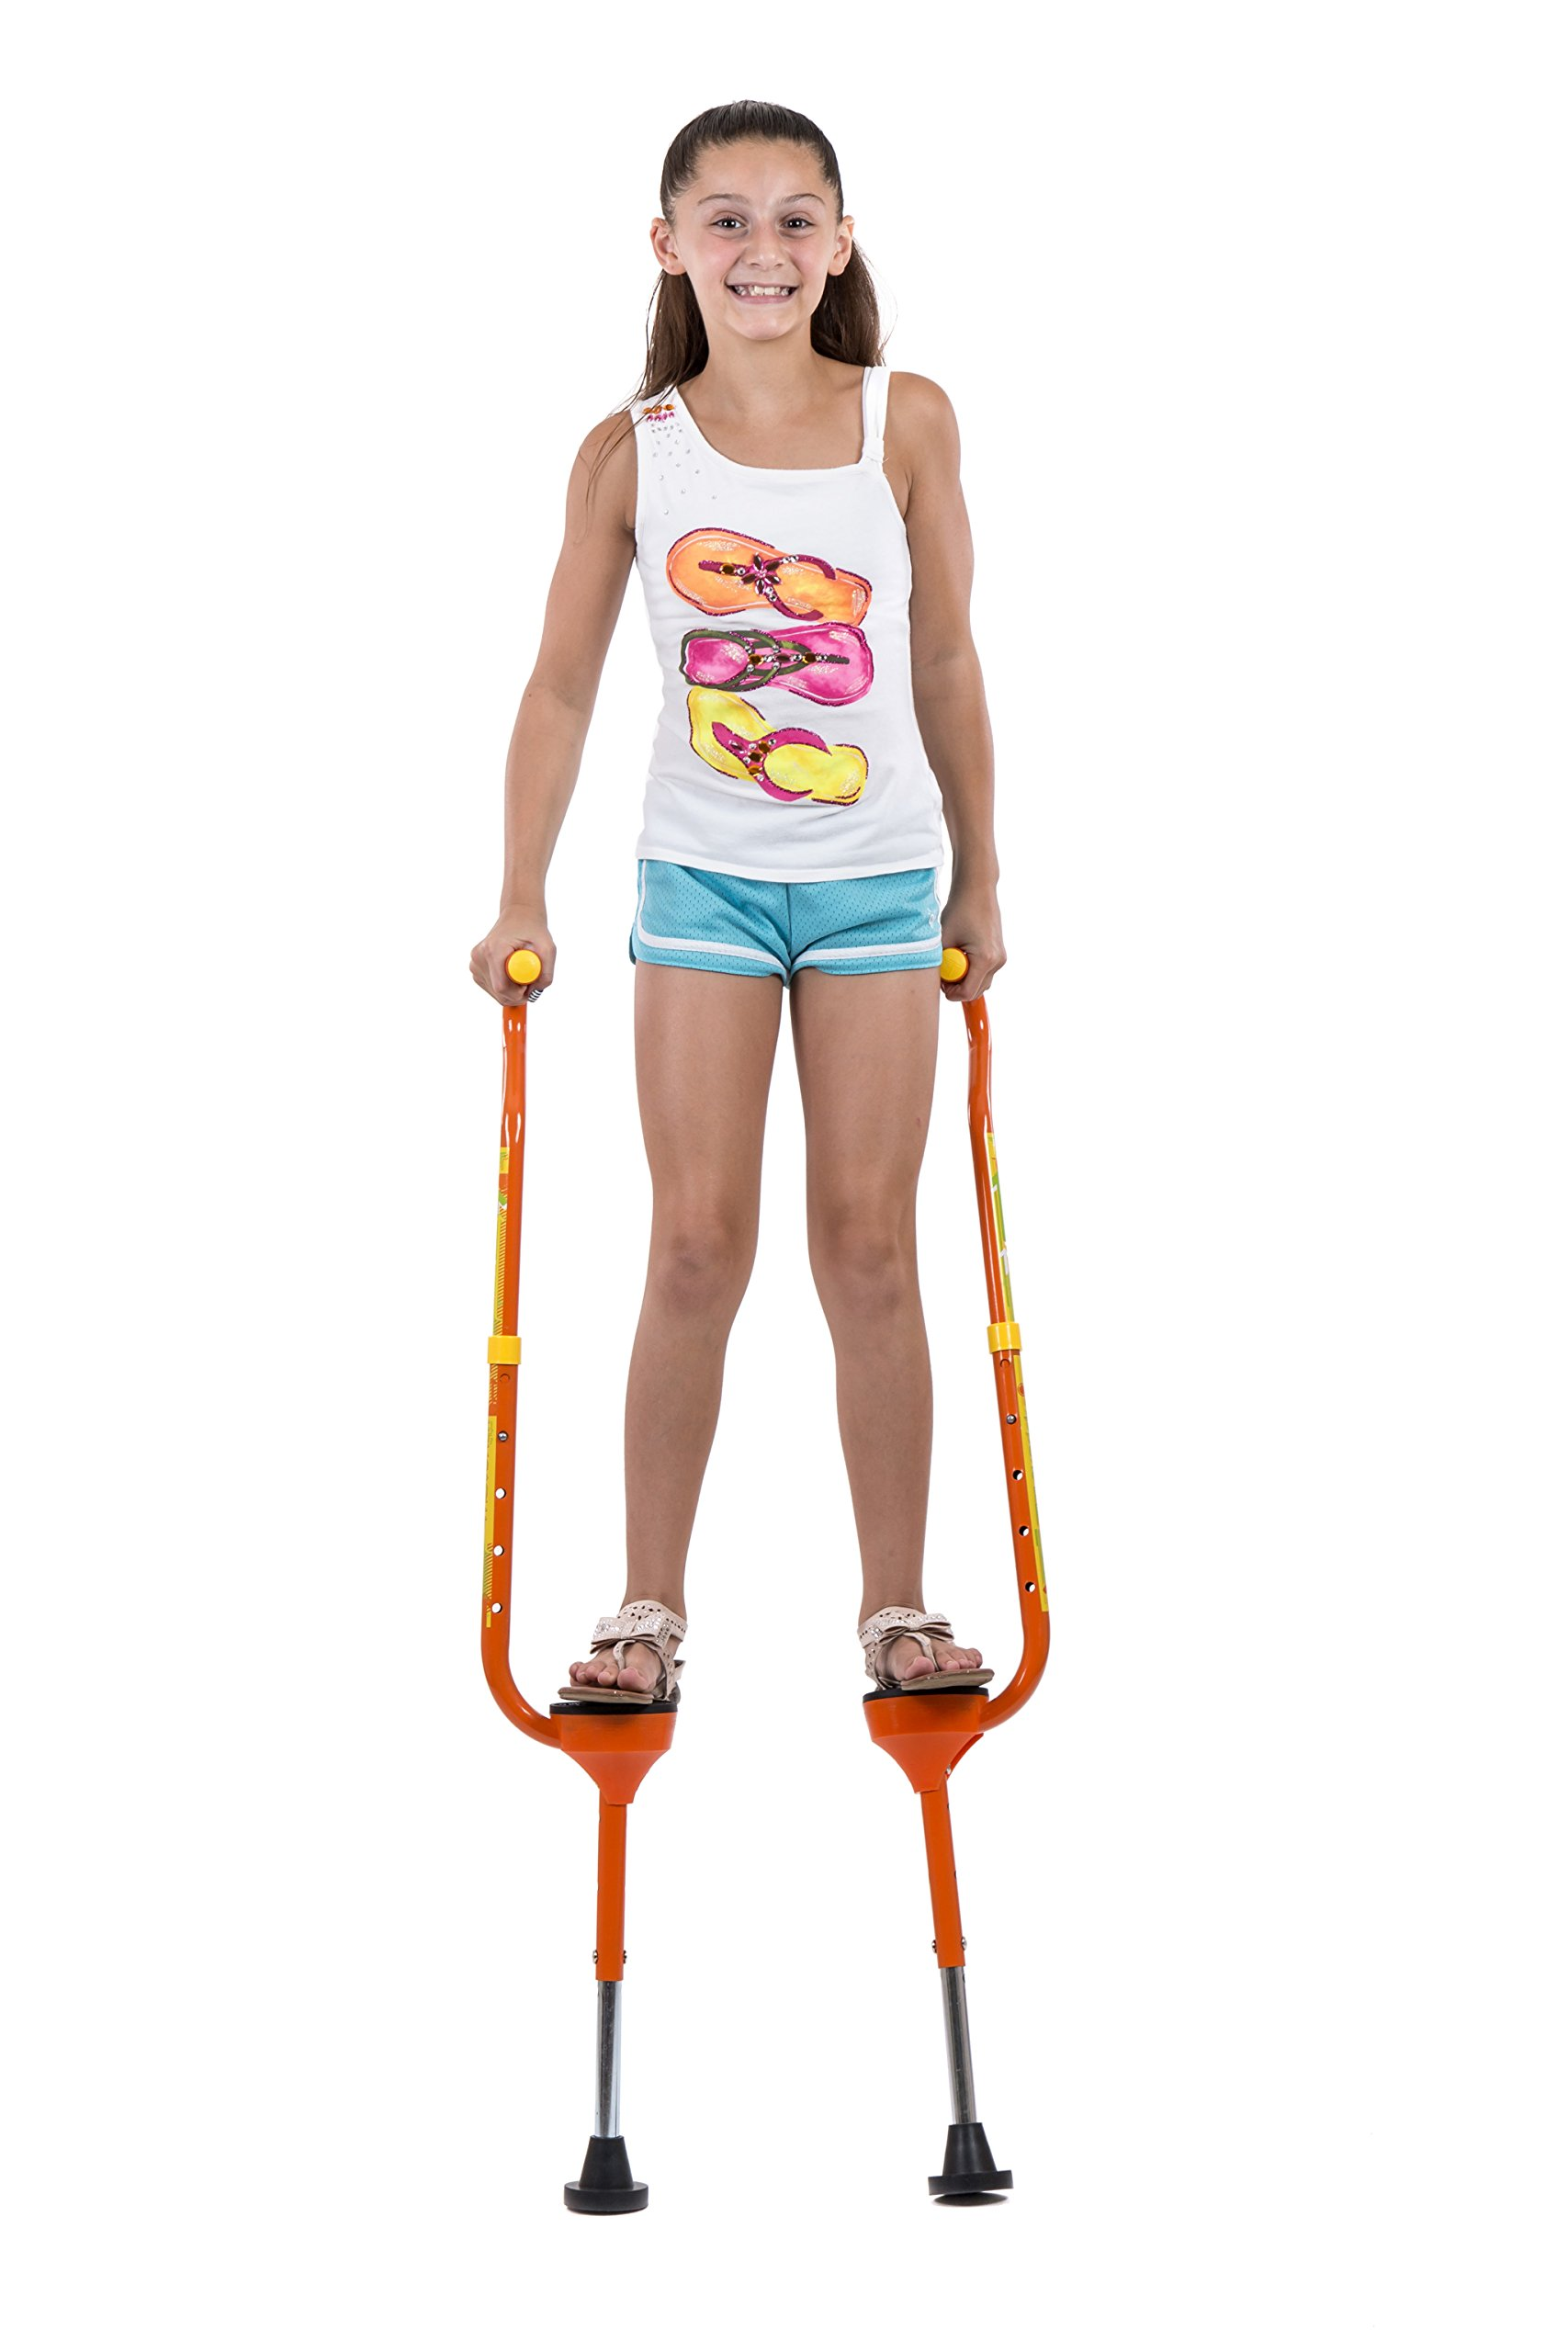 Flybar(R Maverick Small Stilts - Yellow (Weight Limit 190 lbs) by Flybar